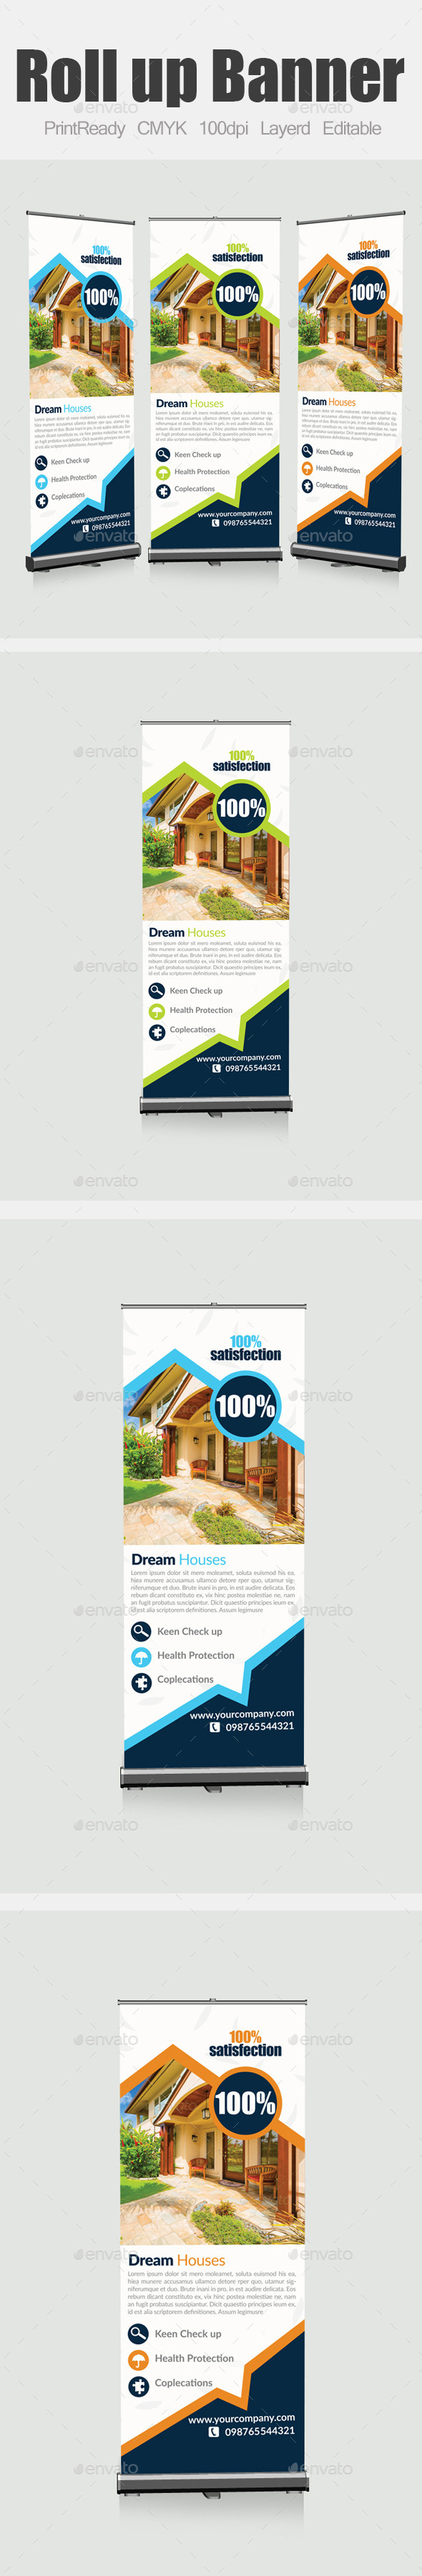 Real Estate Roll Up Banners - Signage Print Templates